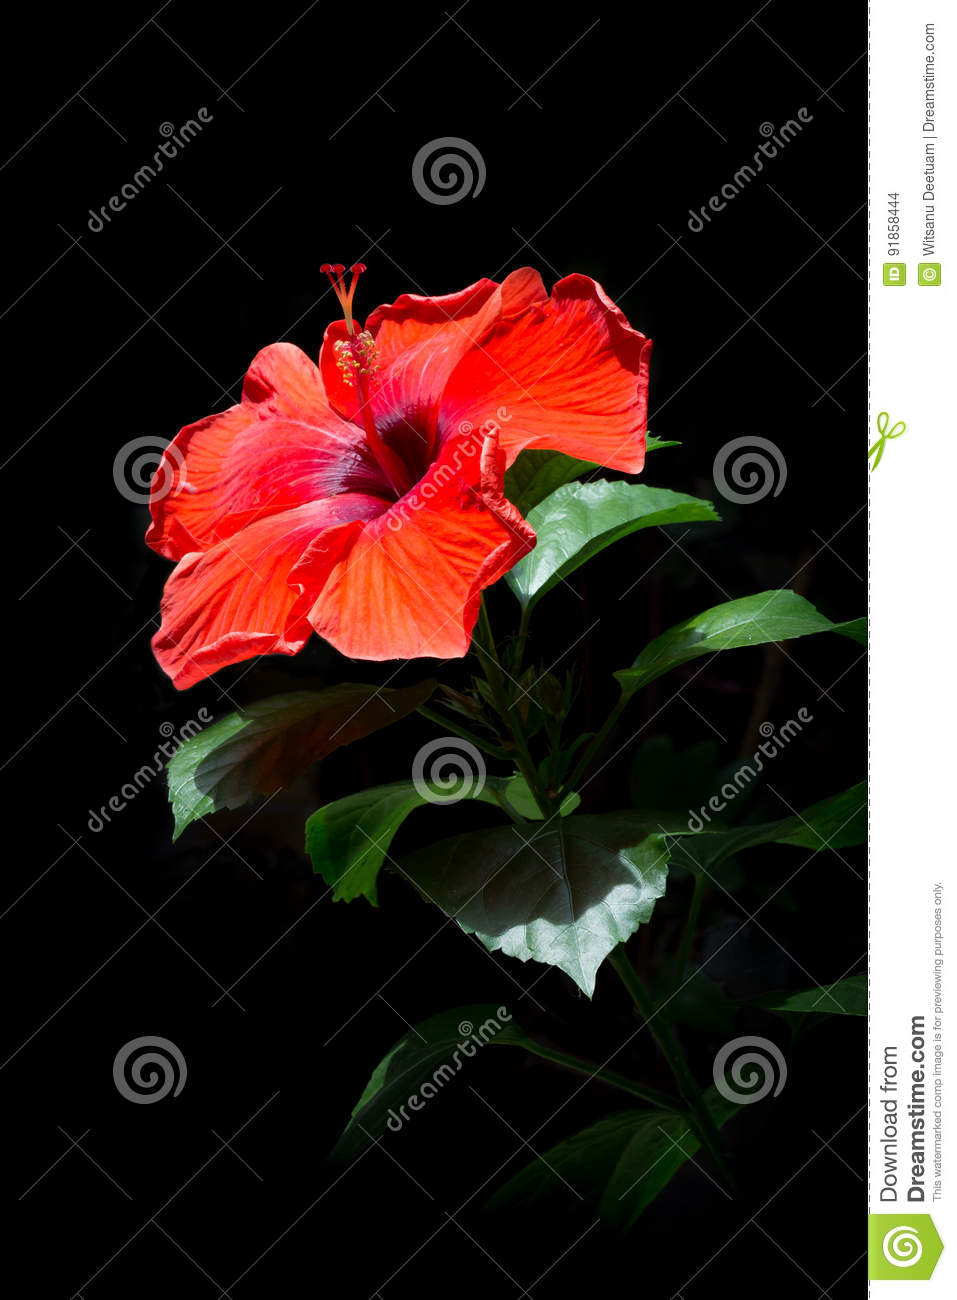 Red hibiscus flowers red flowers on a black background beauti royalty free stock photo izmirmasajfo